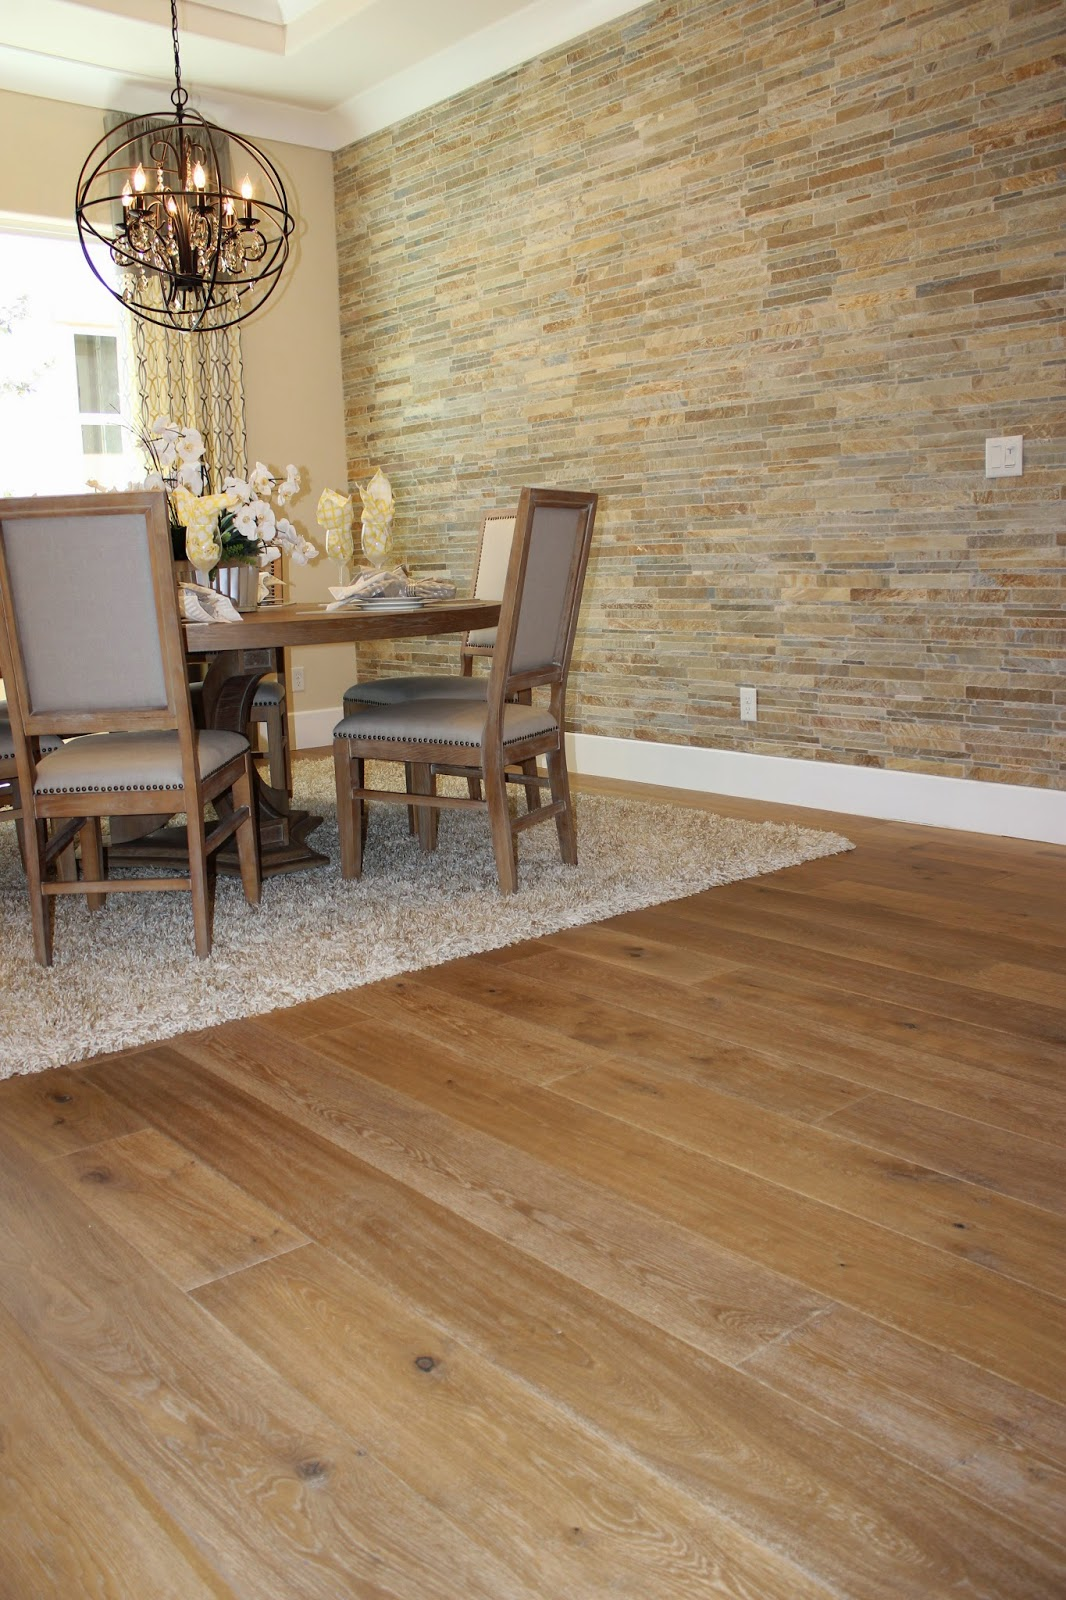 Simas floor and design company royal oak hardwood floors for Flooring companies in my area